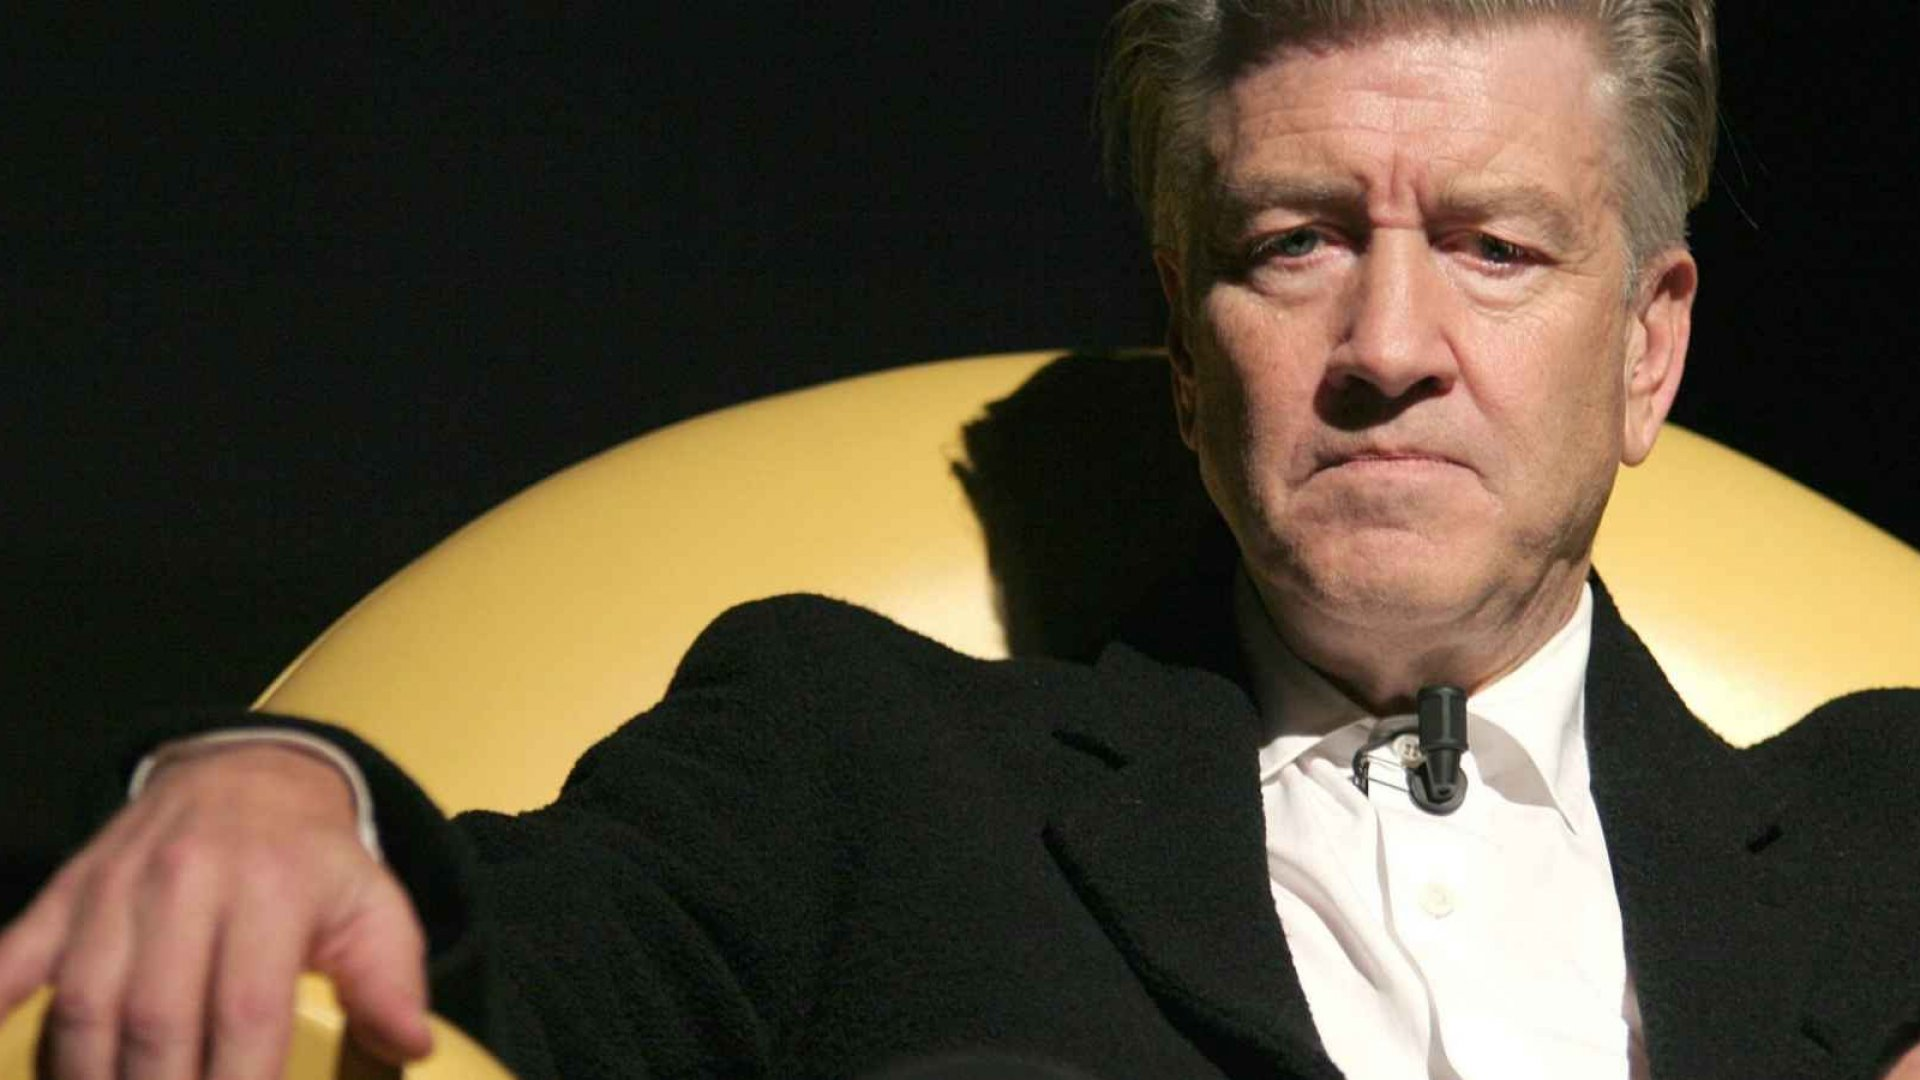 Director David Lynch on How to Go Fishing for Great Ideas